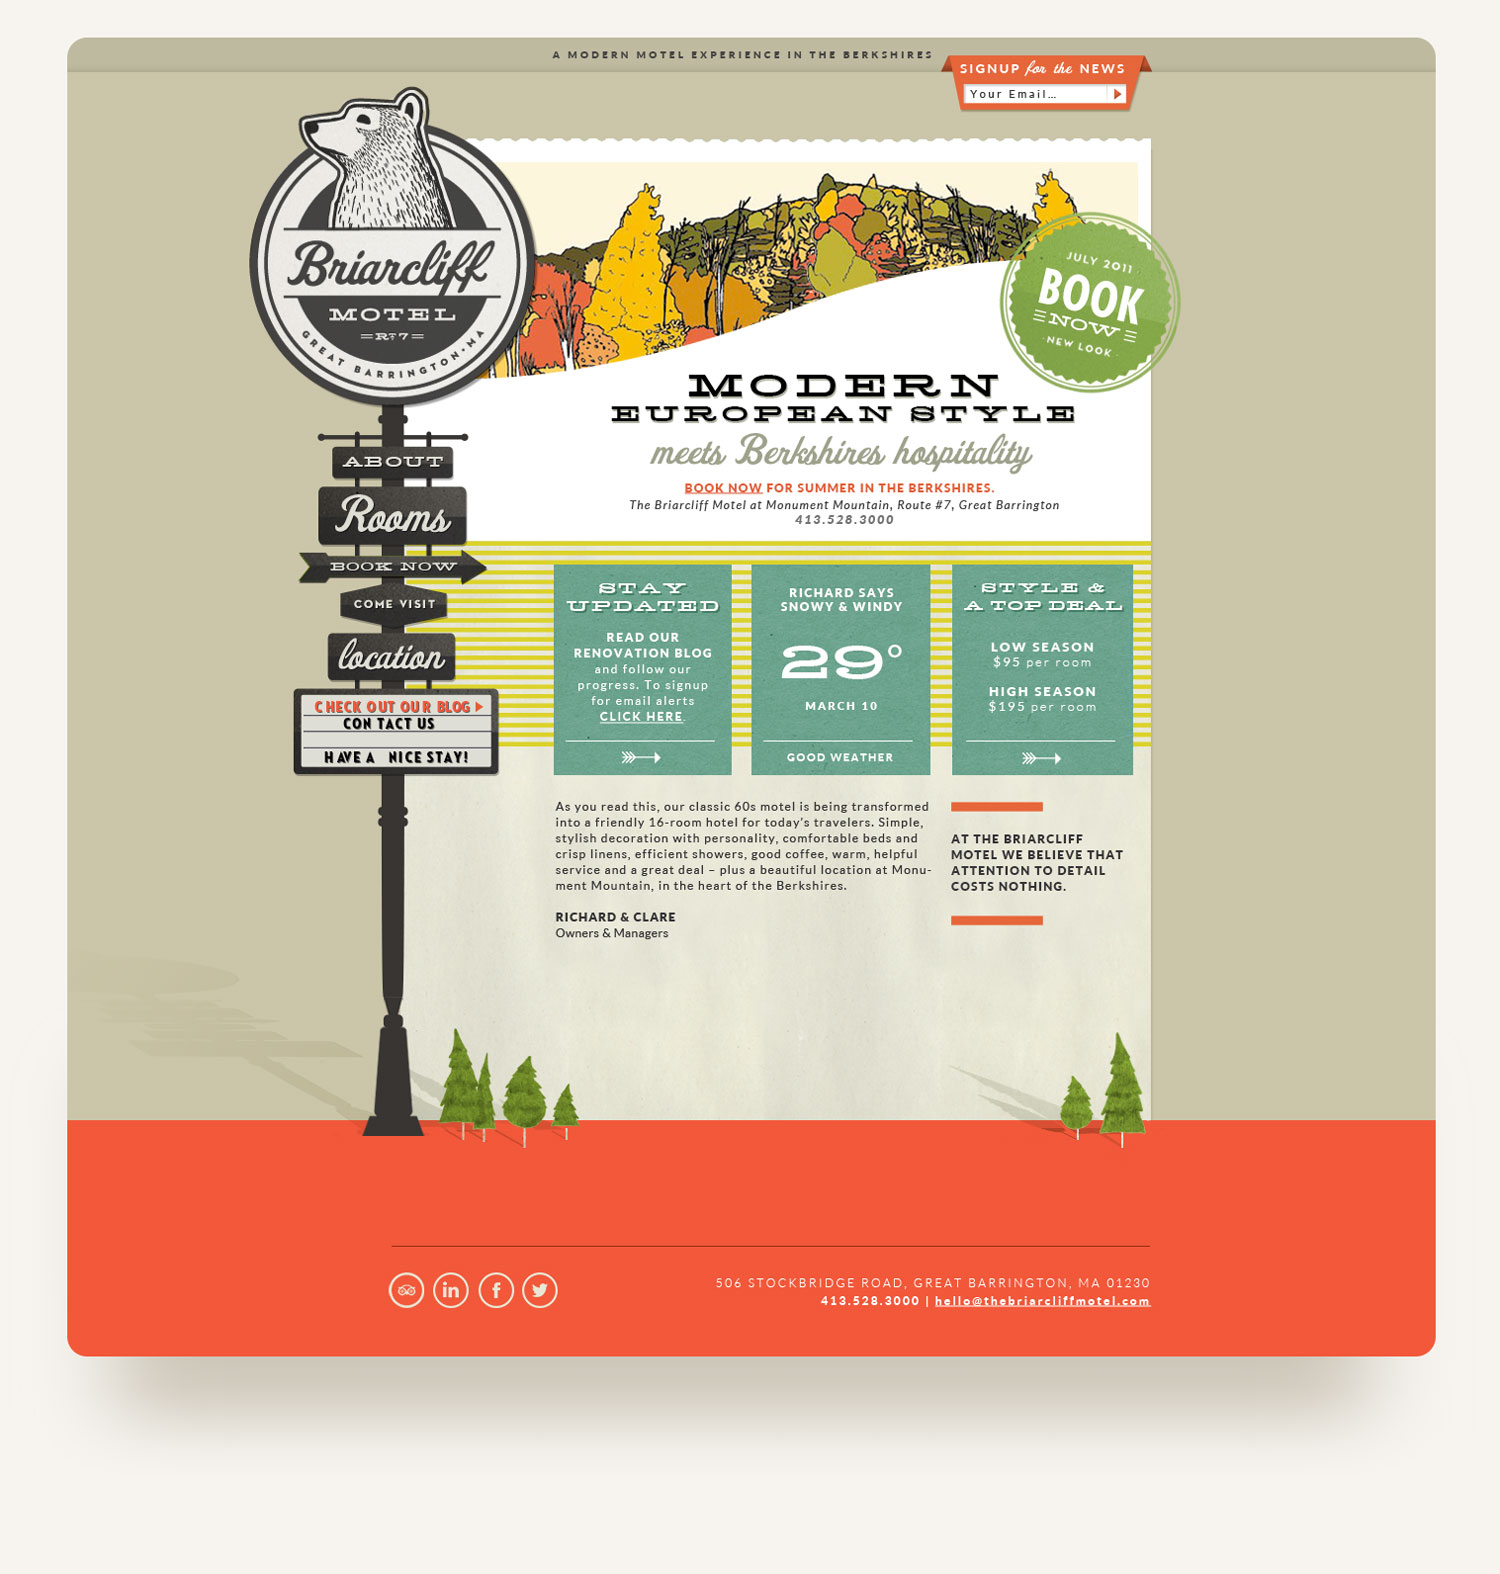 Quirky retro website with motel signage rollover illustration navigation for The Briarcliff Motel Berkshires. Web design by Brittany Hurdle beckon webeckon